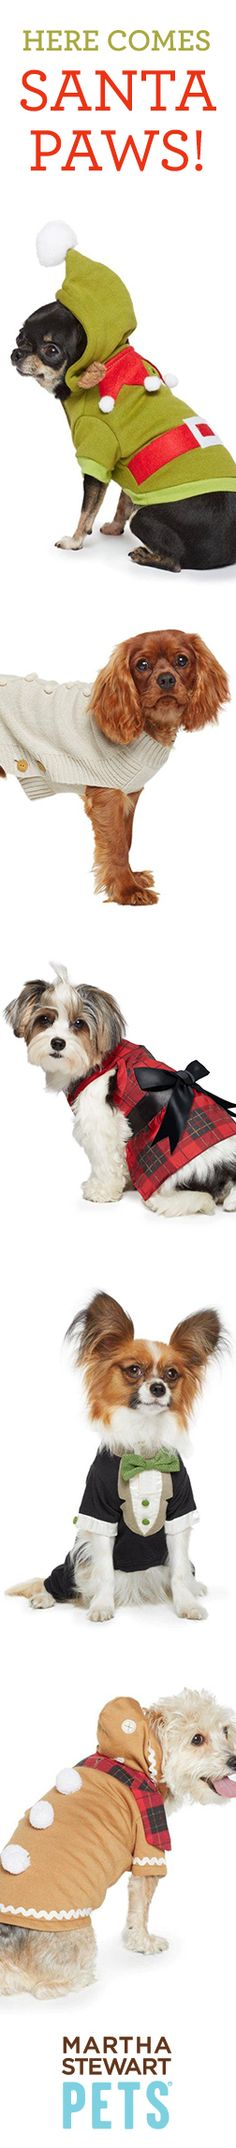 Adorn your furry friends in elegant attire this season.